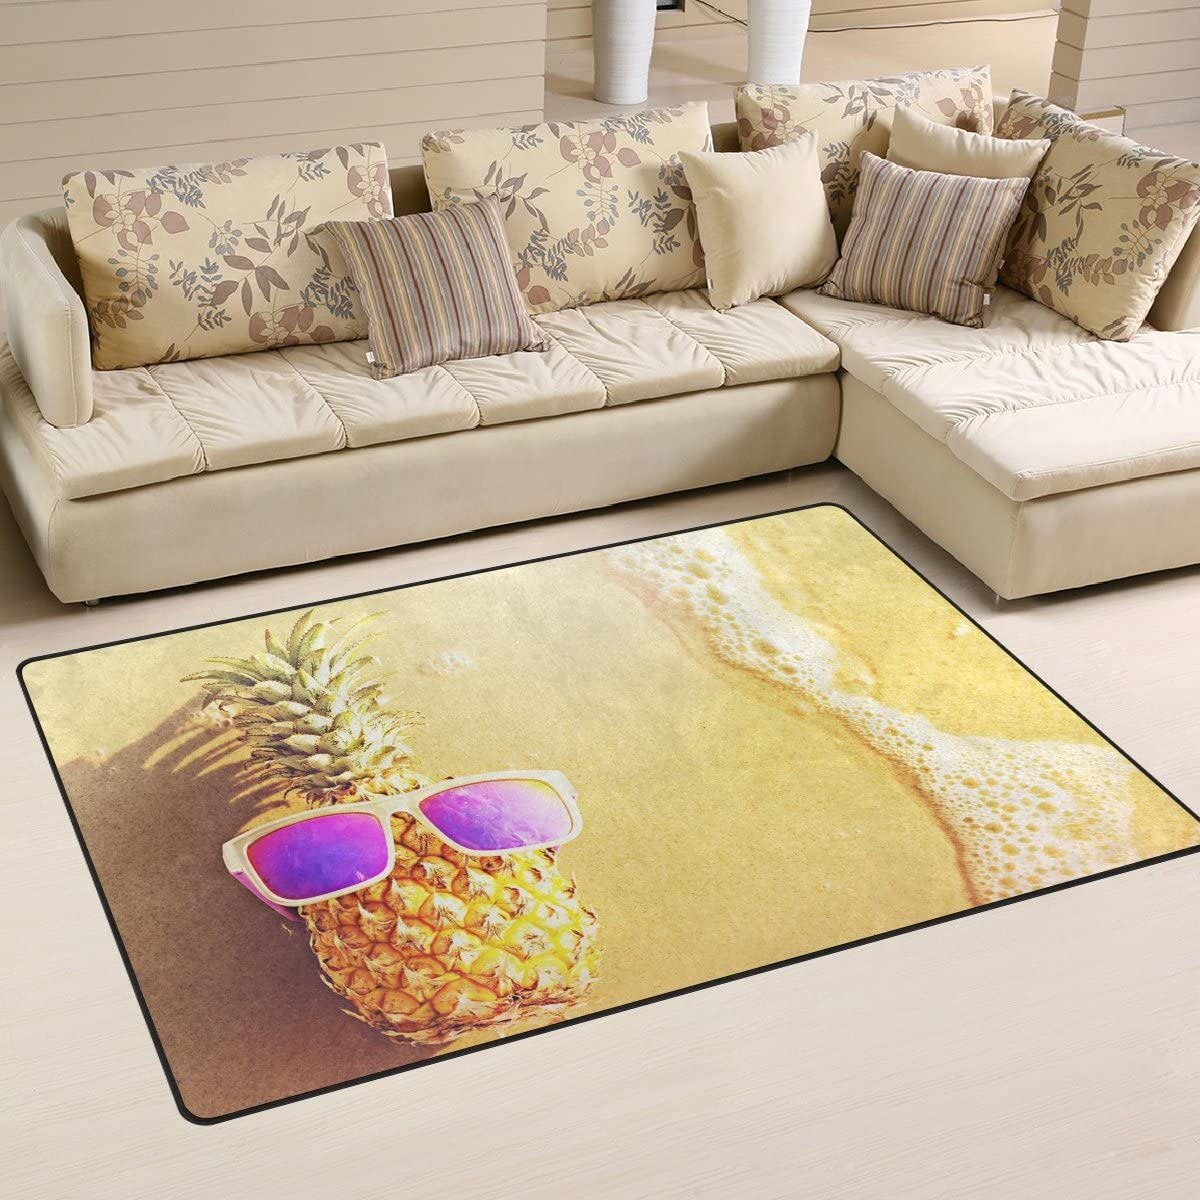 Yochoice Non-slip Area Rugs Home Decor, Stylish Pineapple in Sunglasses on the Beach Floor Mat Living Room Bedroom Carpets Doormats 60 x 39 inches